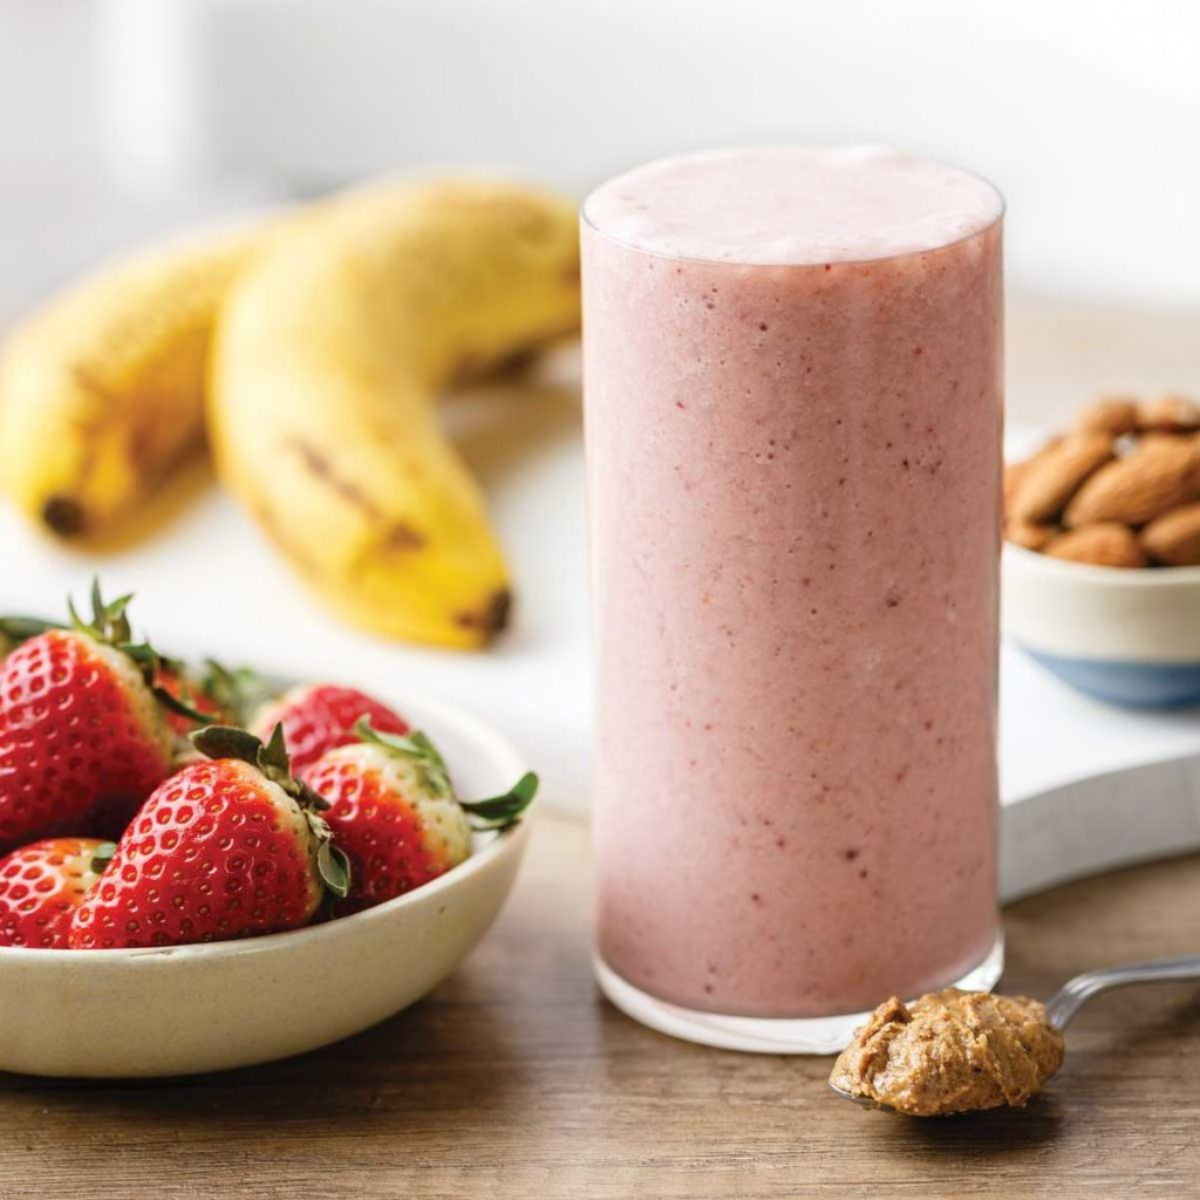 a glass of almond butter smoothie, next to a bowl of strawberries, 2 bananas and a bowl of almonds